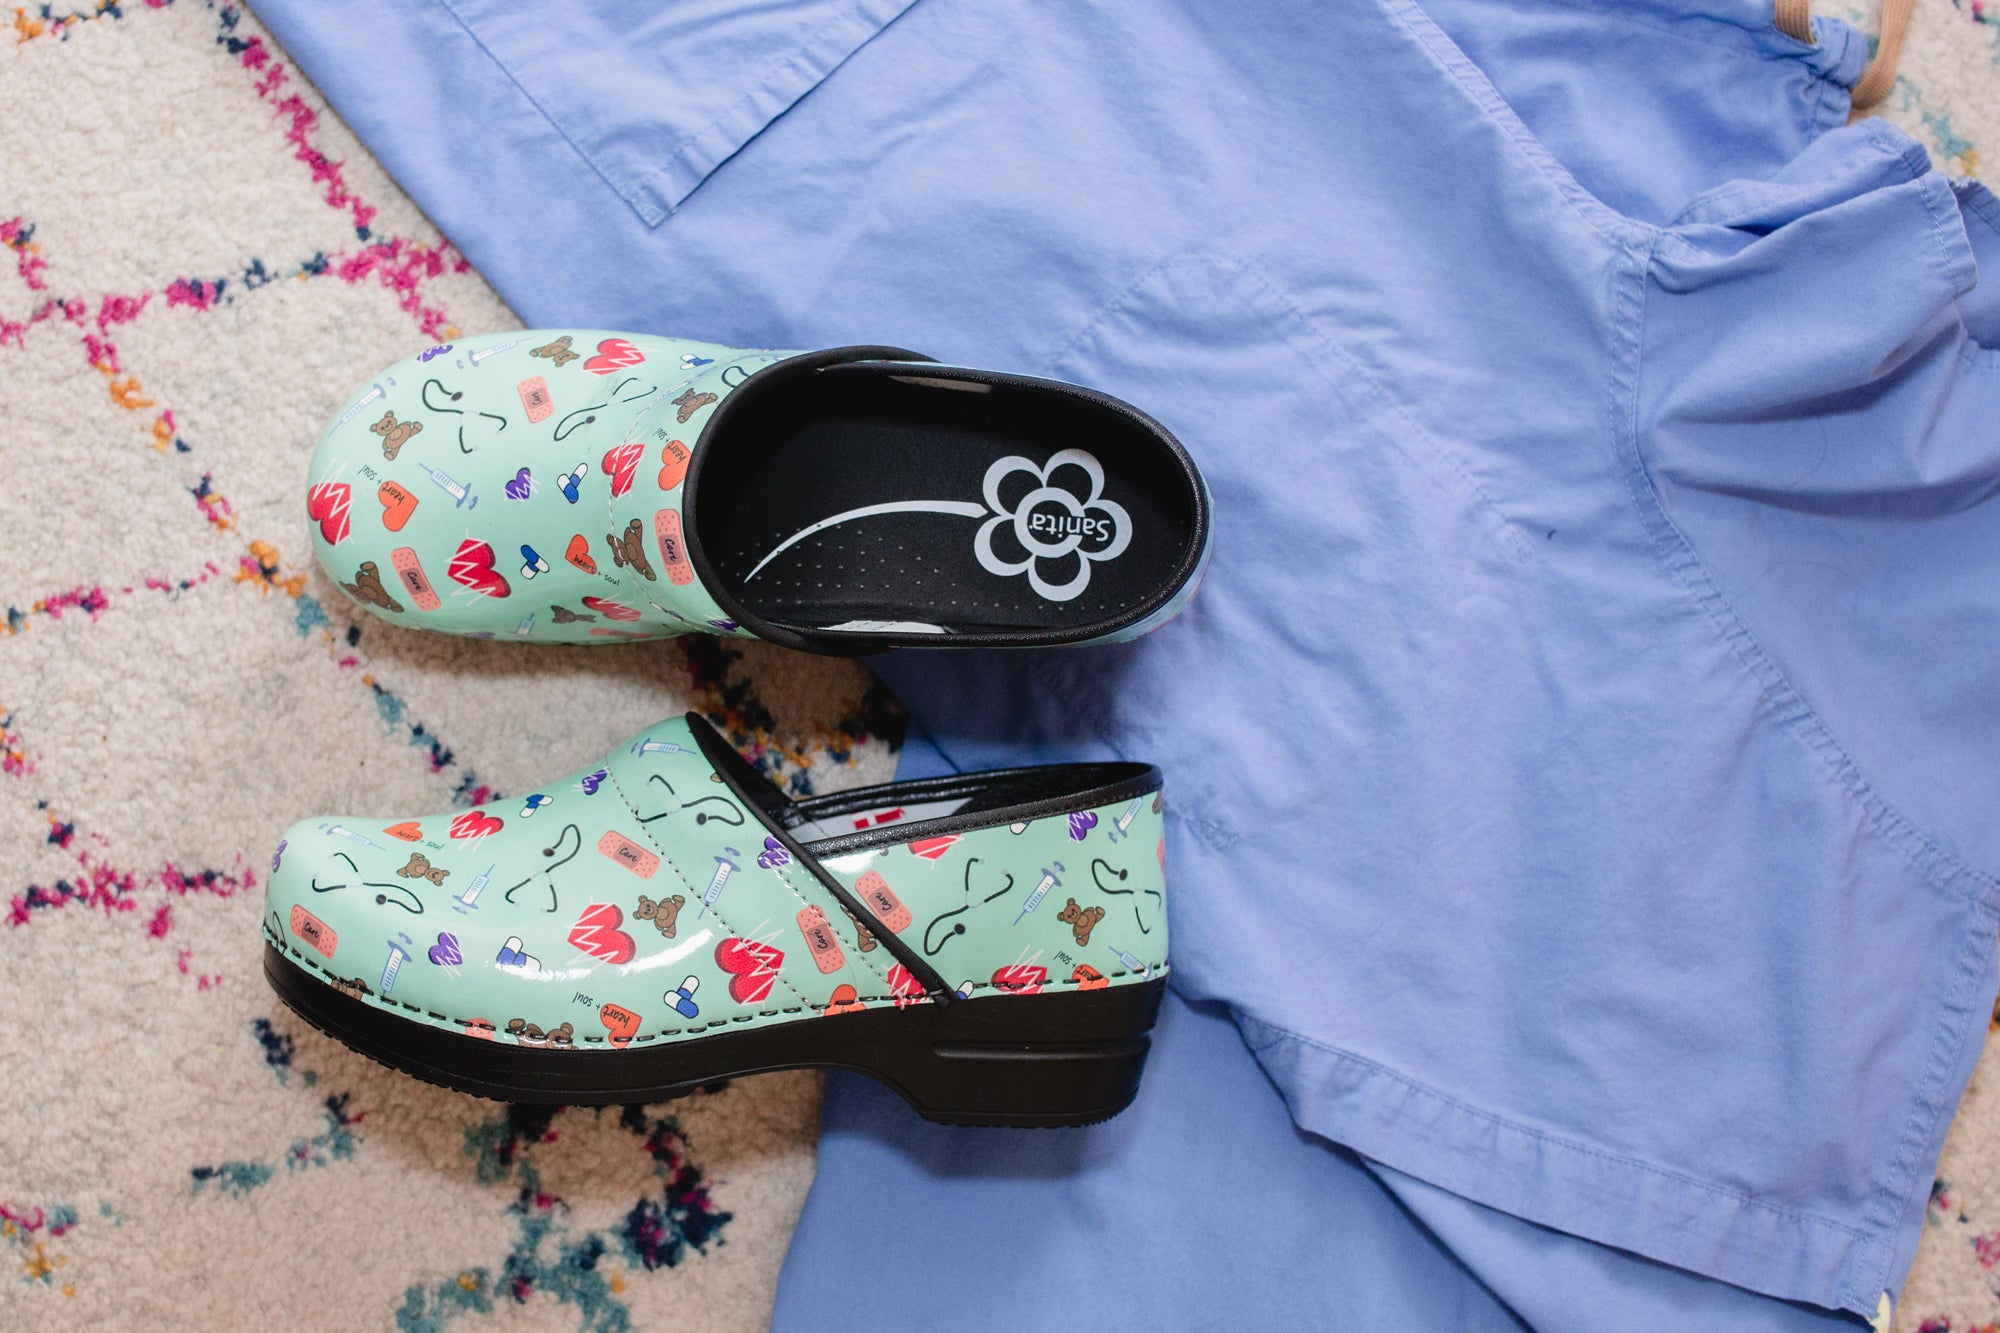 Women's Medical/Dental Shoes